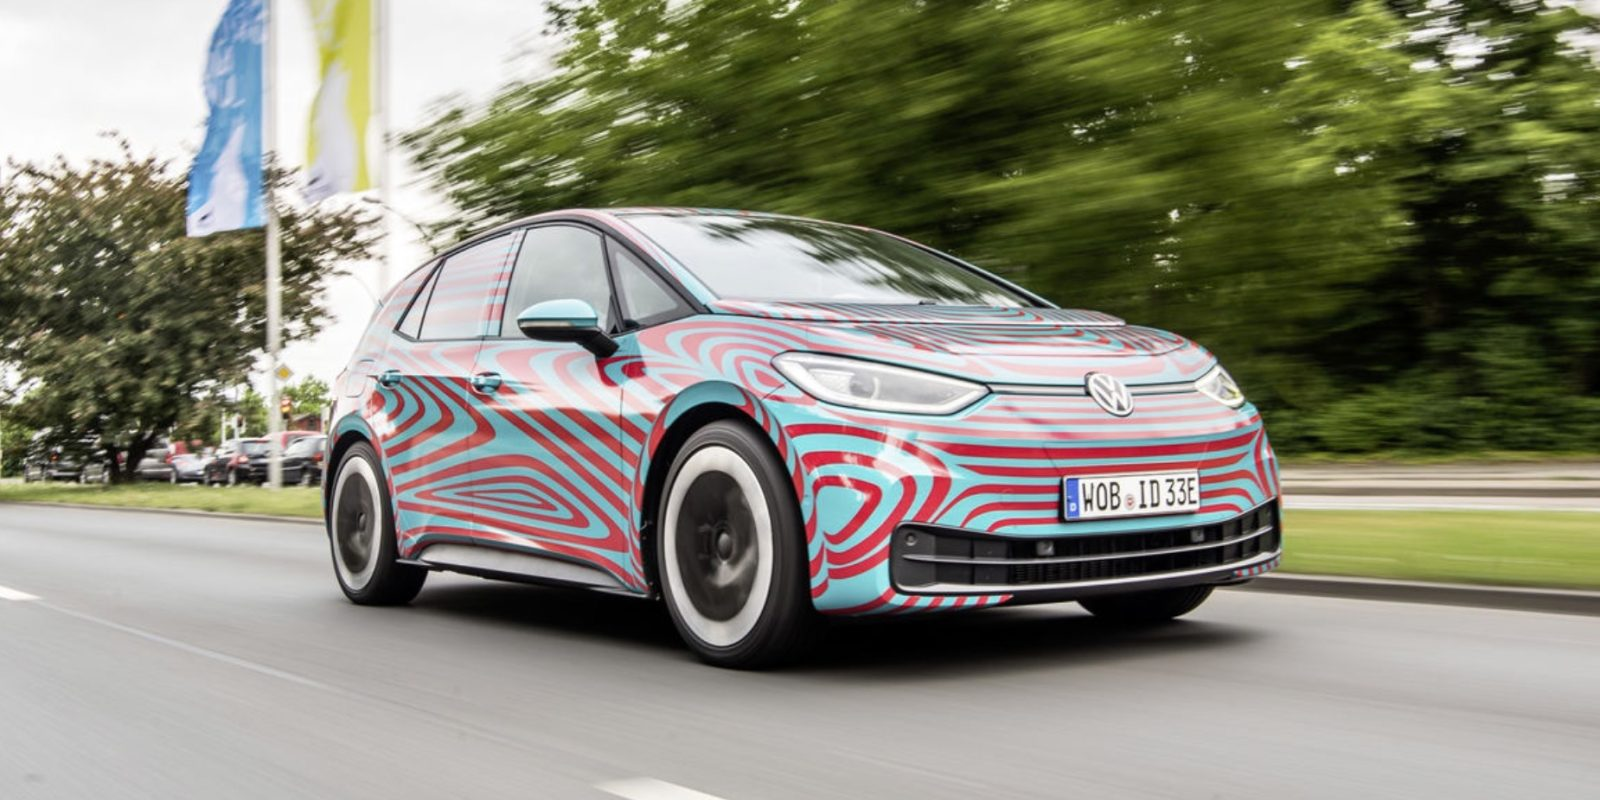 VW To Unveil ID3 Electric Car Next Week, Compares